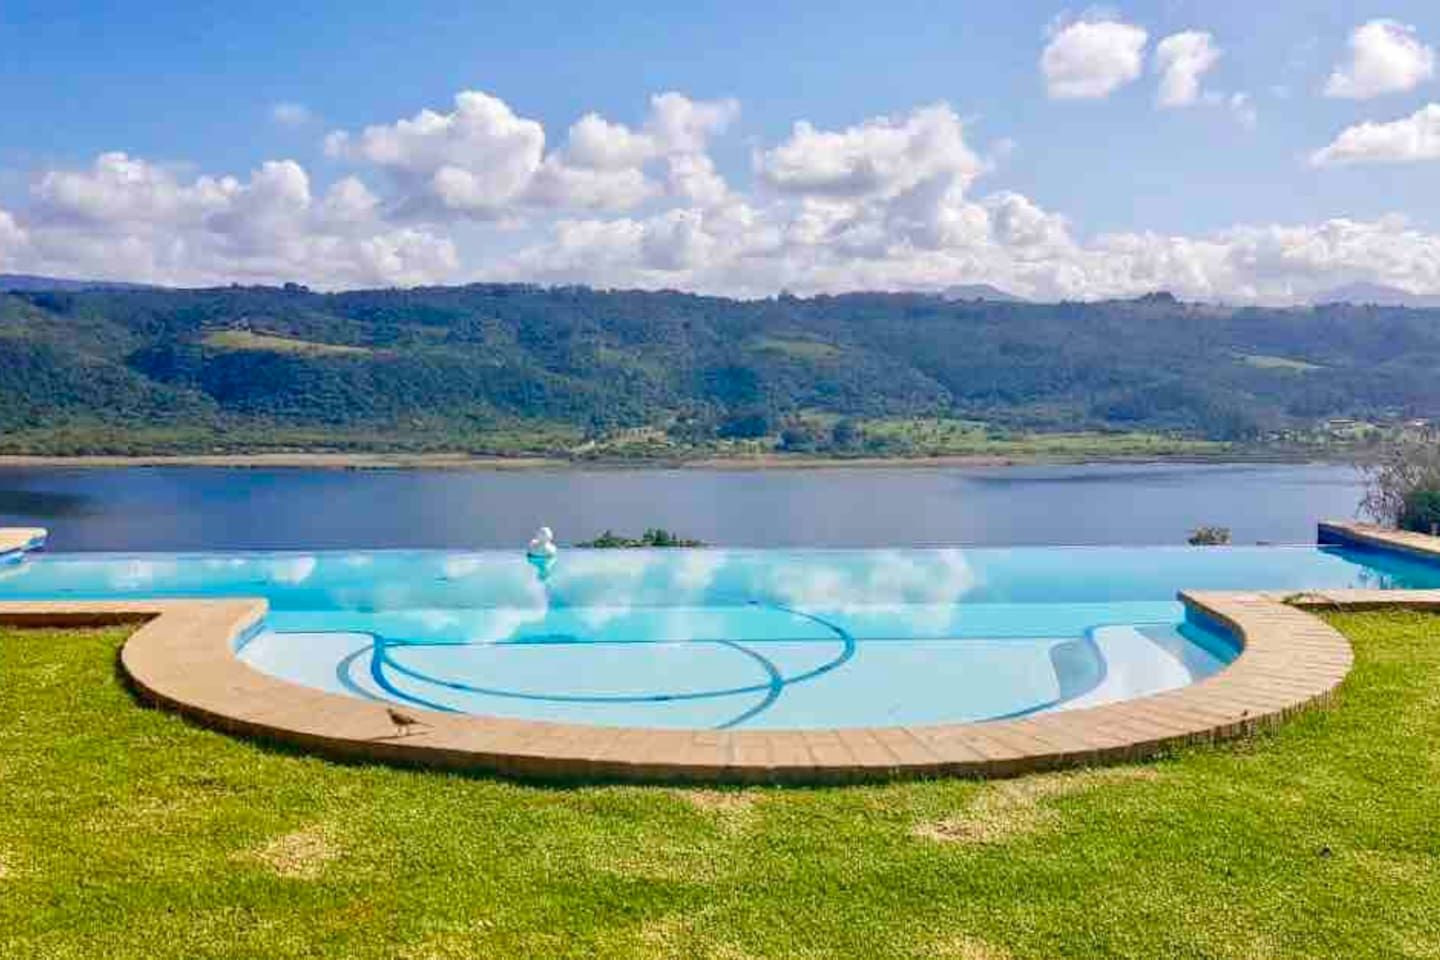 The pool is situated at the main lodge 150m from the cabin